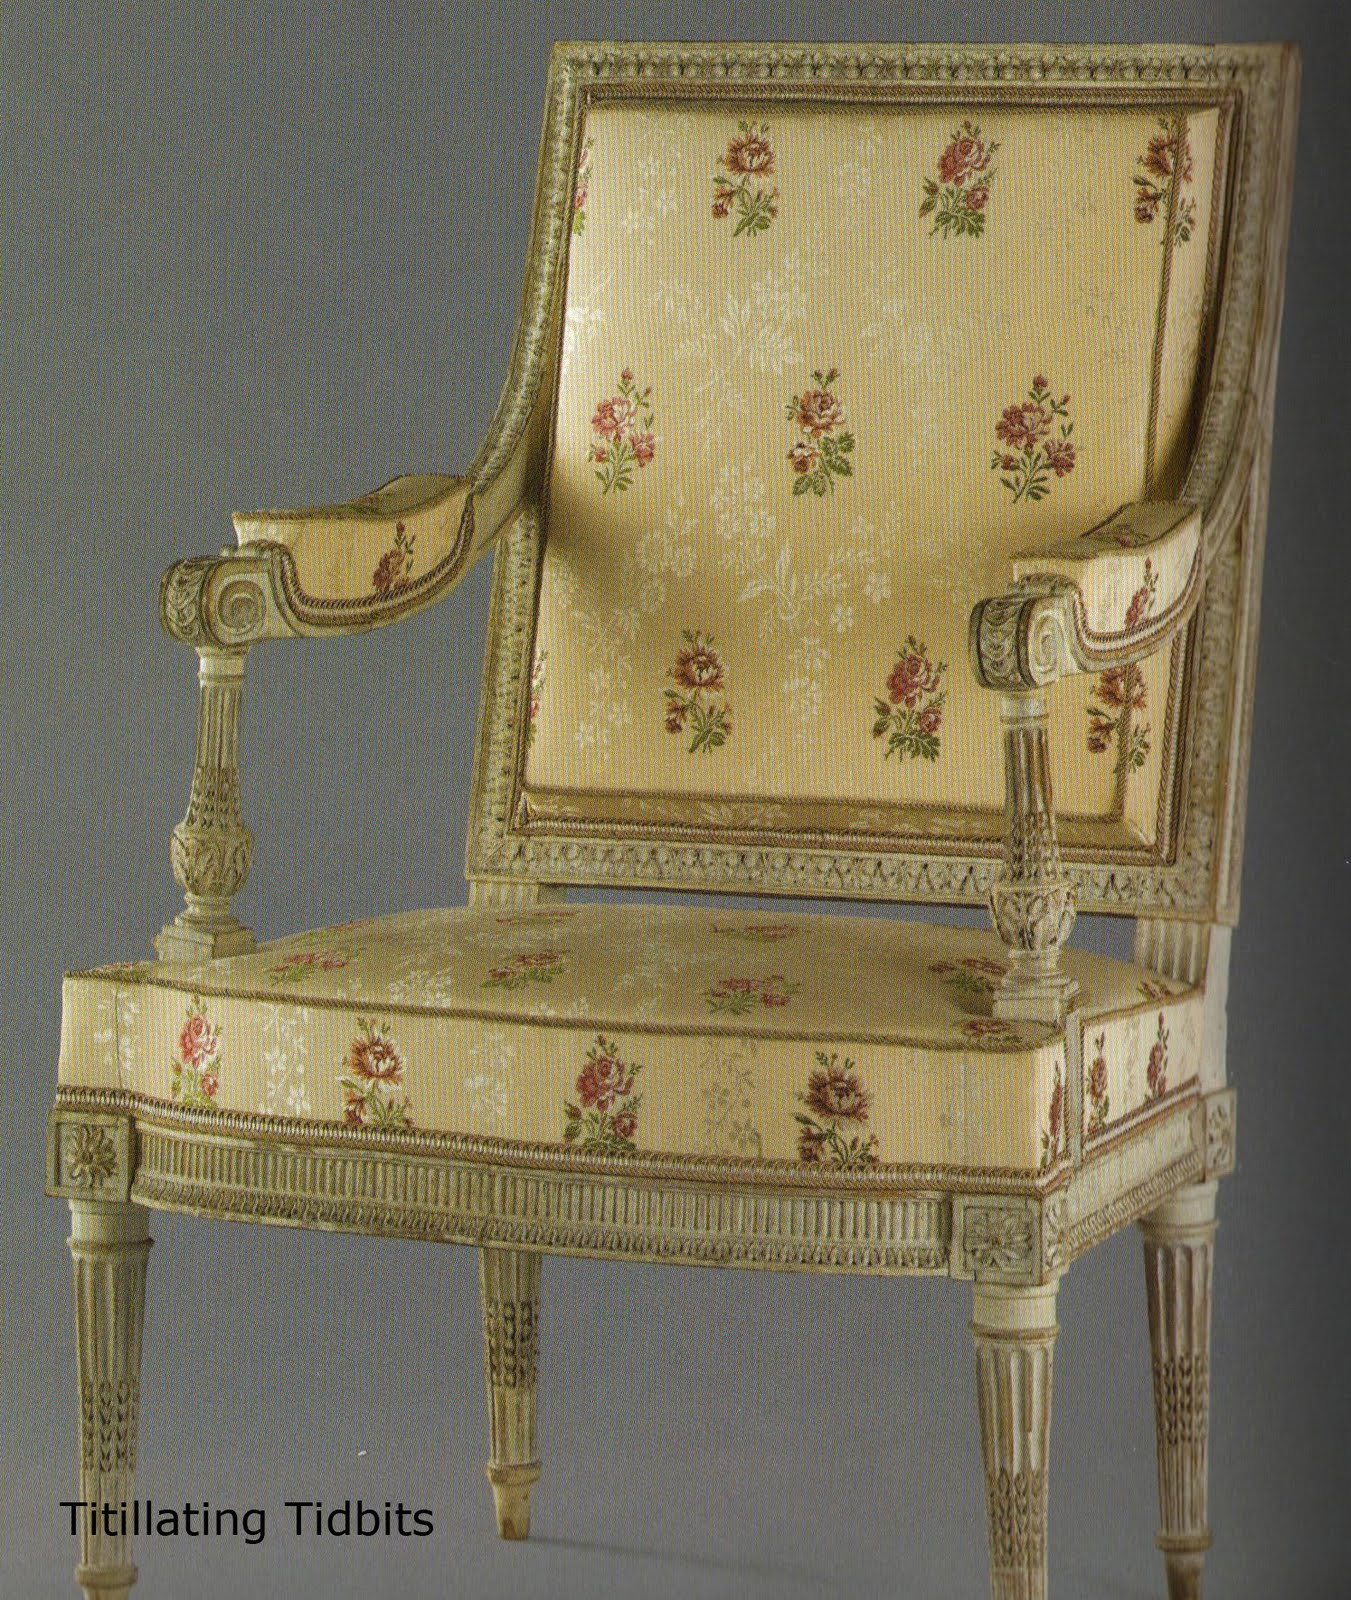 Titillating Tidbits About 18th Century France